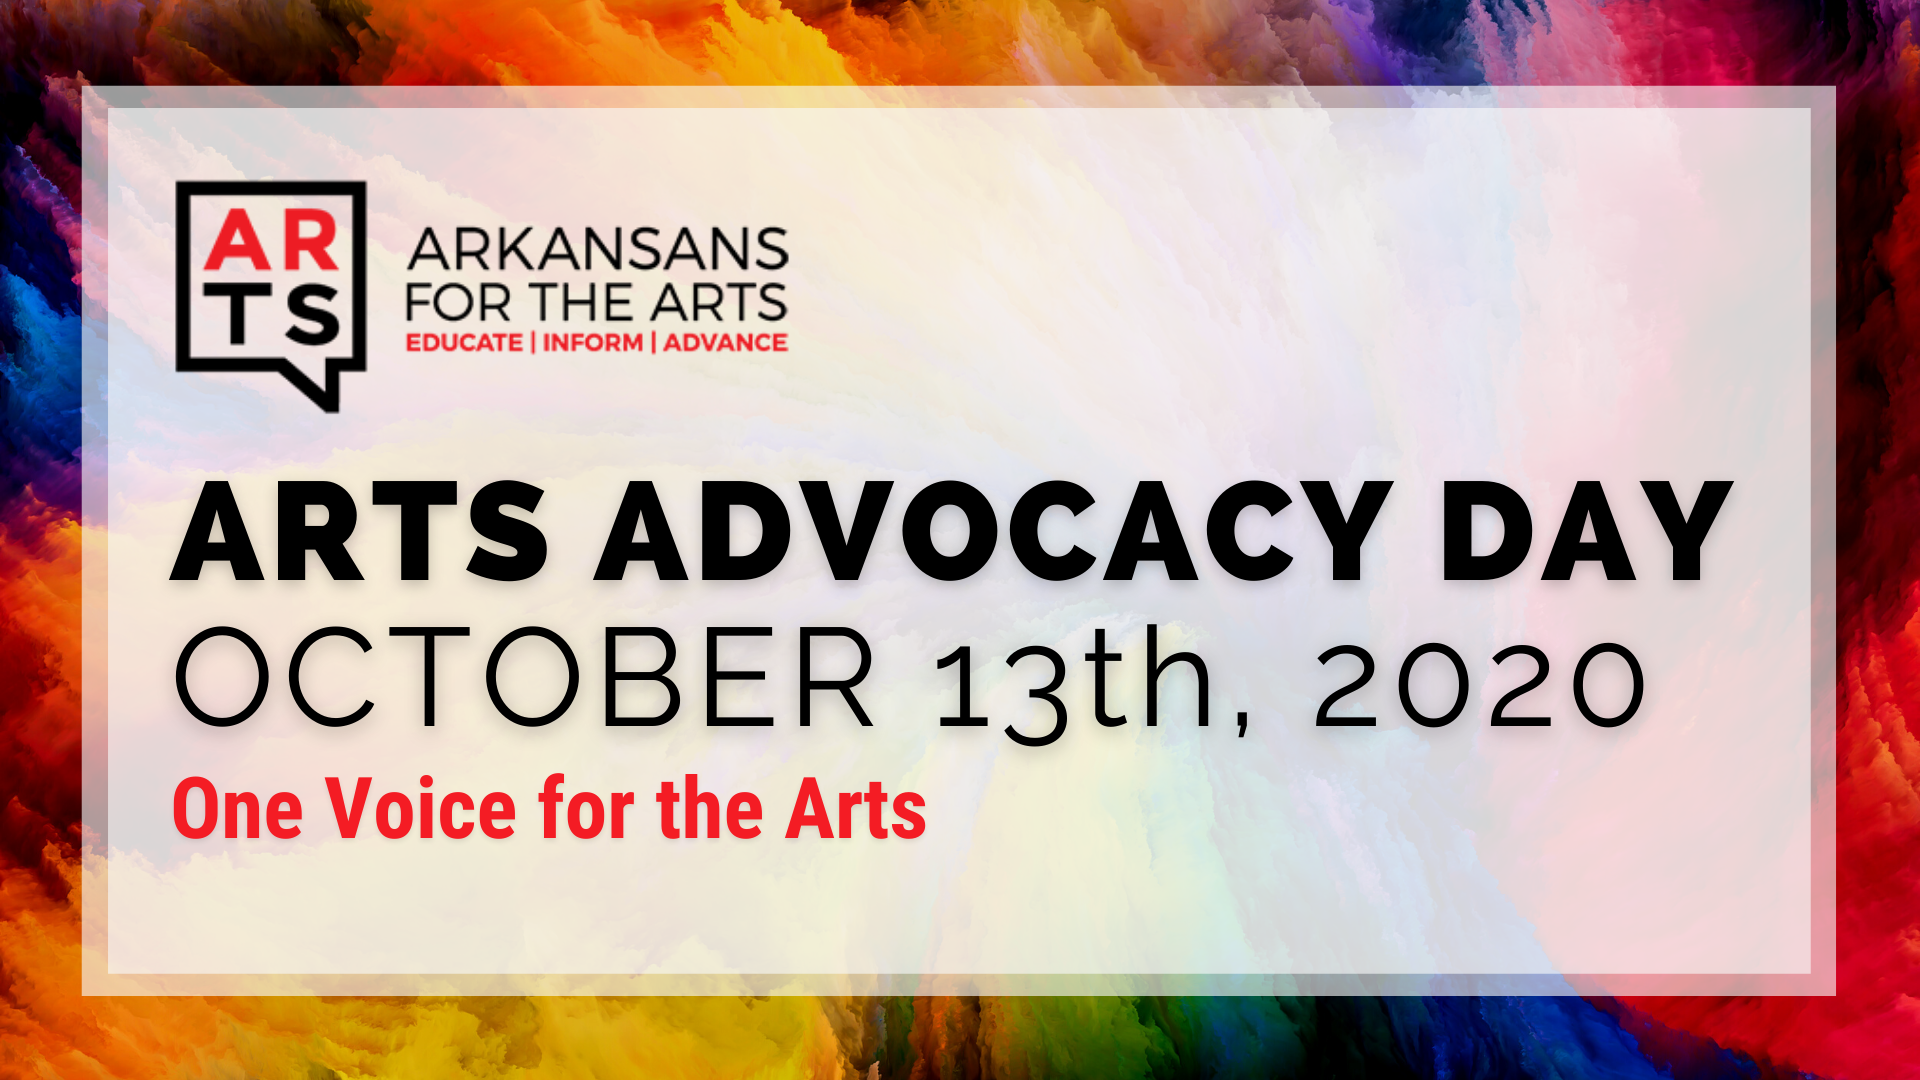 Arkansans for the Arts | Arts Advocacy Day | October 13th, 2020 | One Voice for the Arts